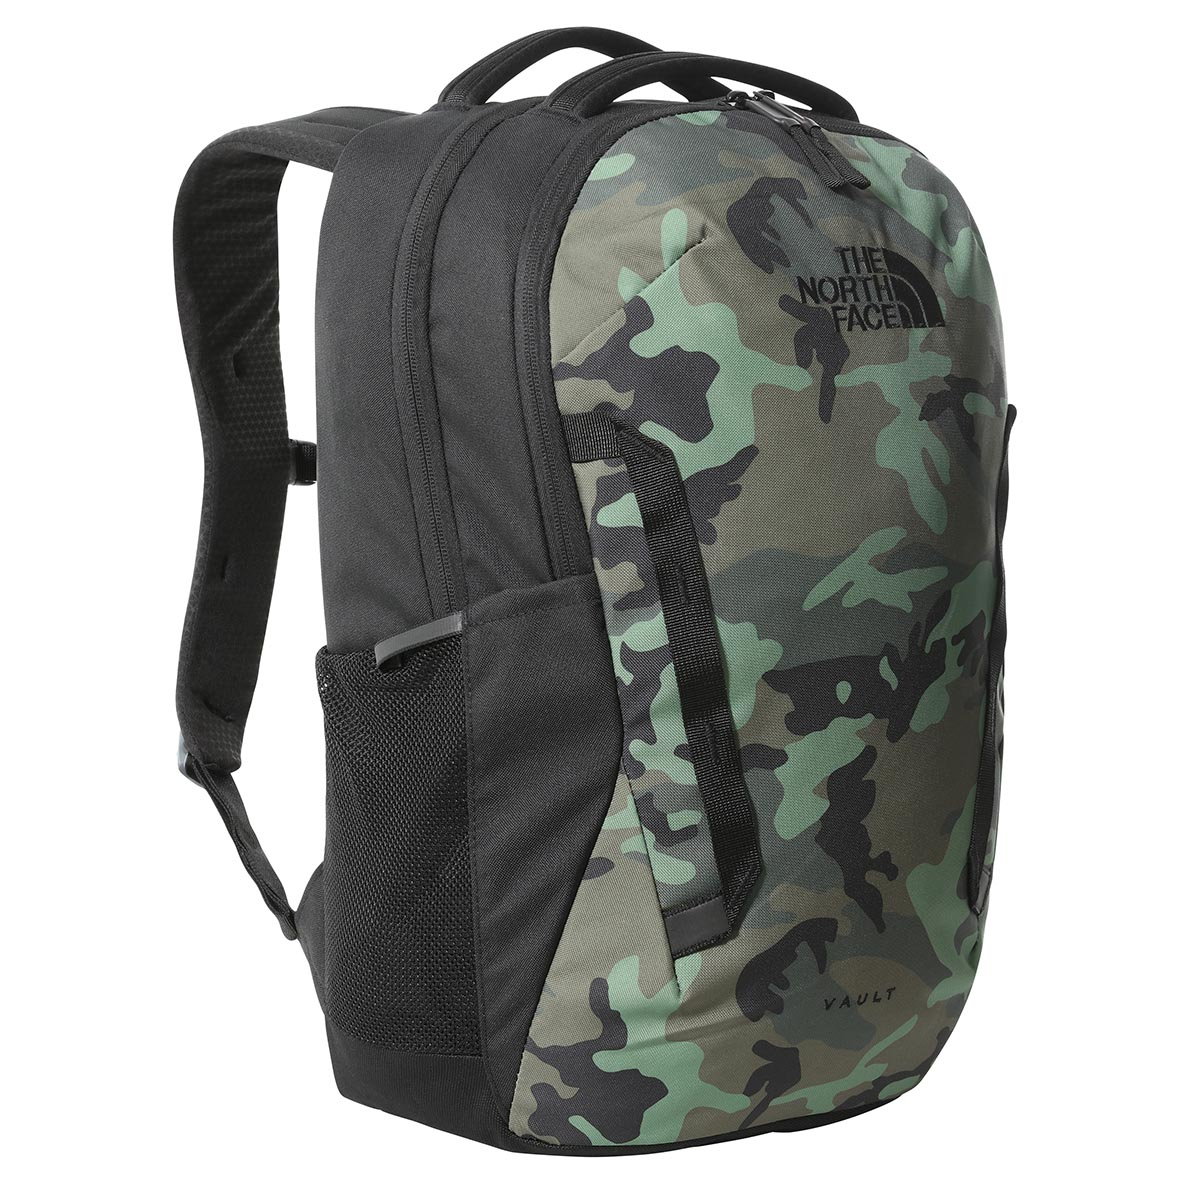 The Northface VAULT NF0A3VY228F1